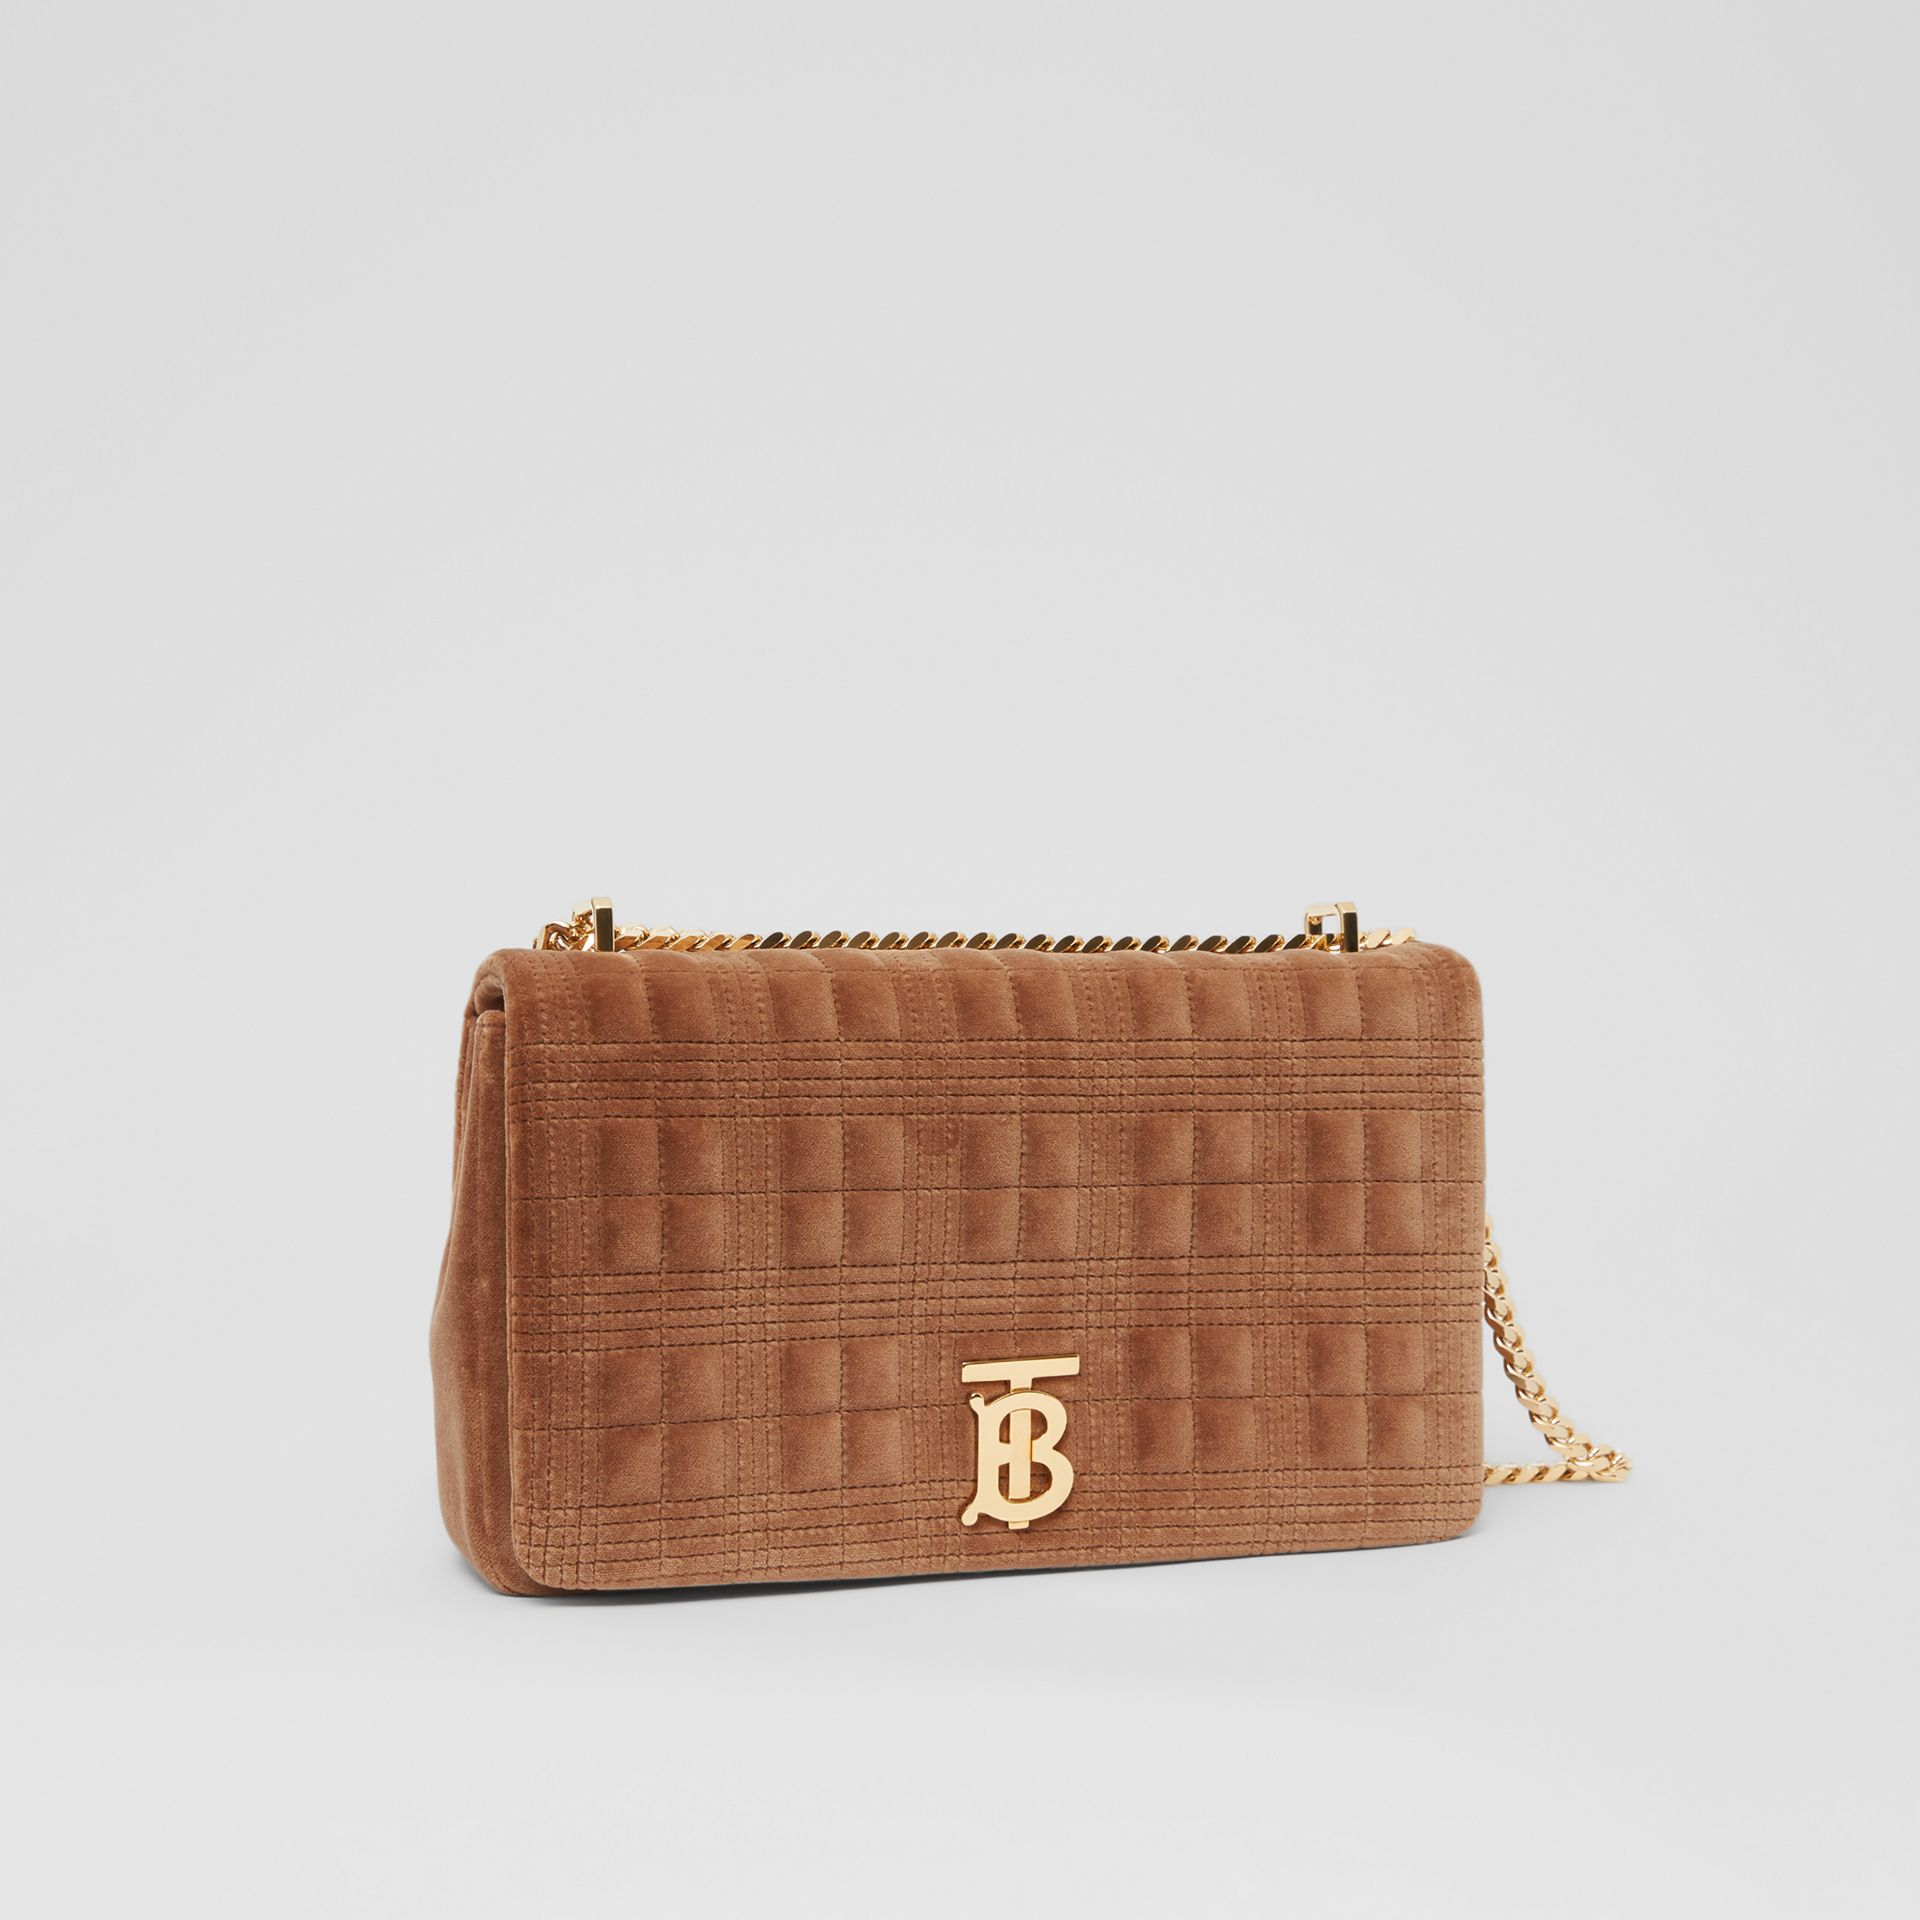 Medium Quilted Velvet Lola Bag in Fawn - Women | Burberry - gallery image 6